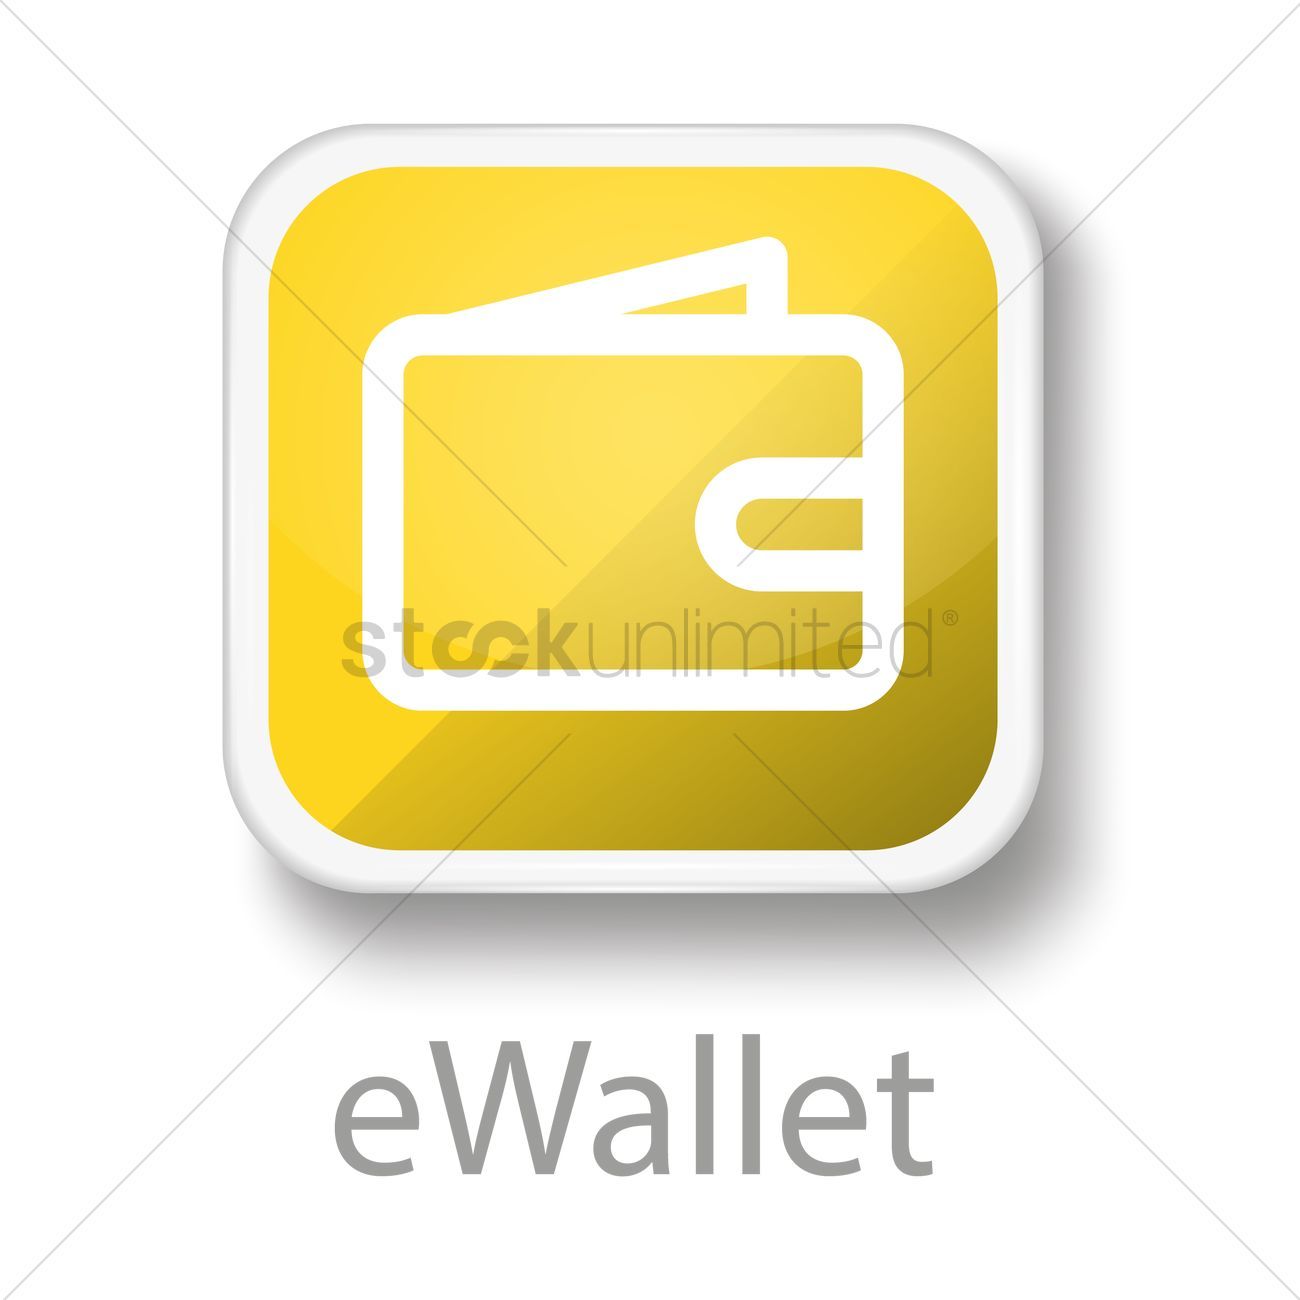 E-wallet icon Vector Image - 1797895 | StockUnlimited